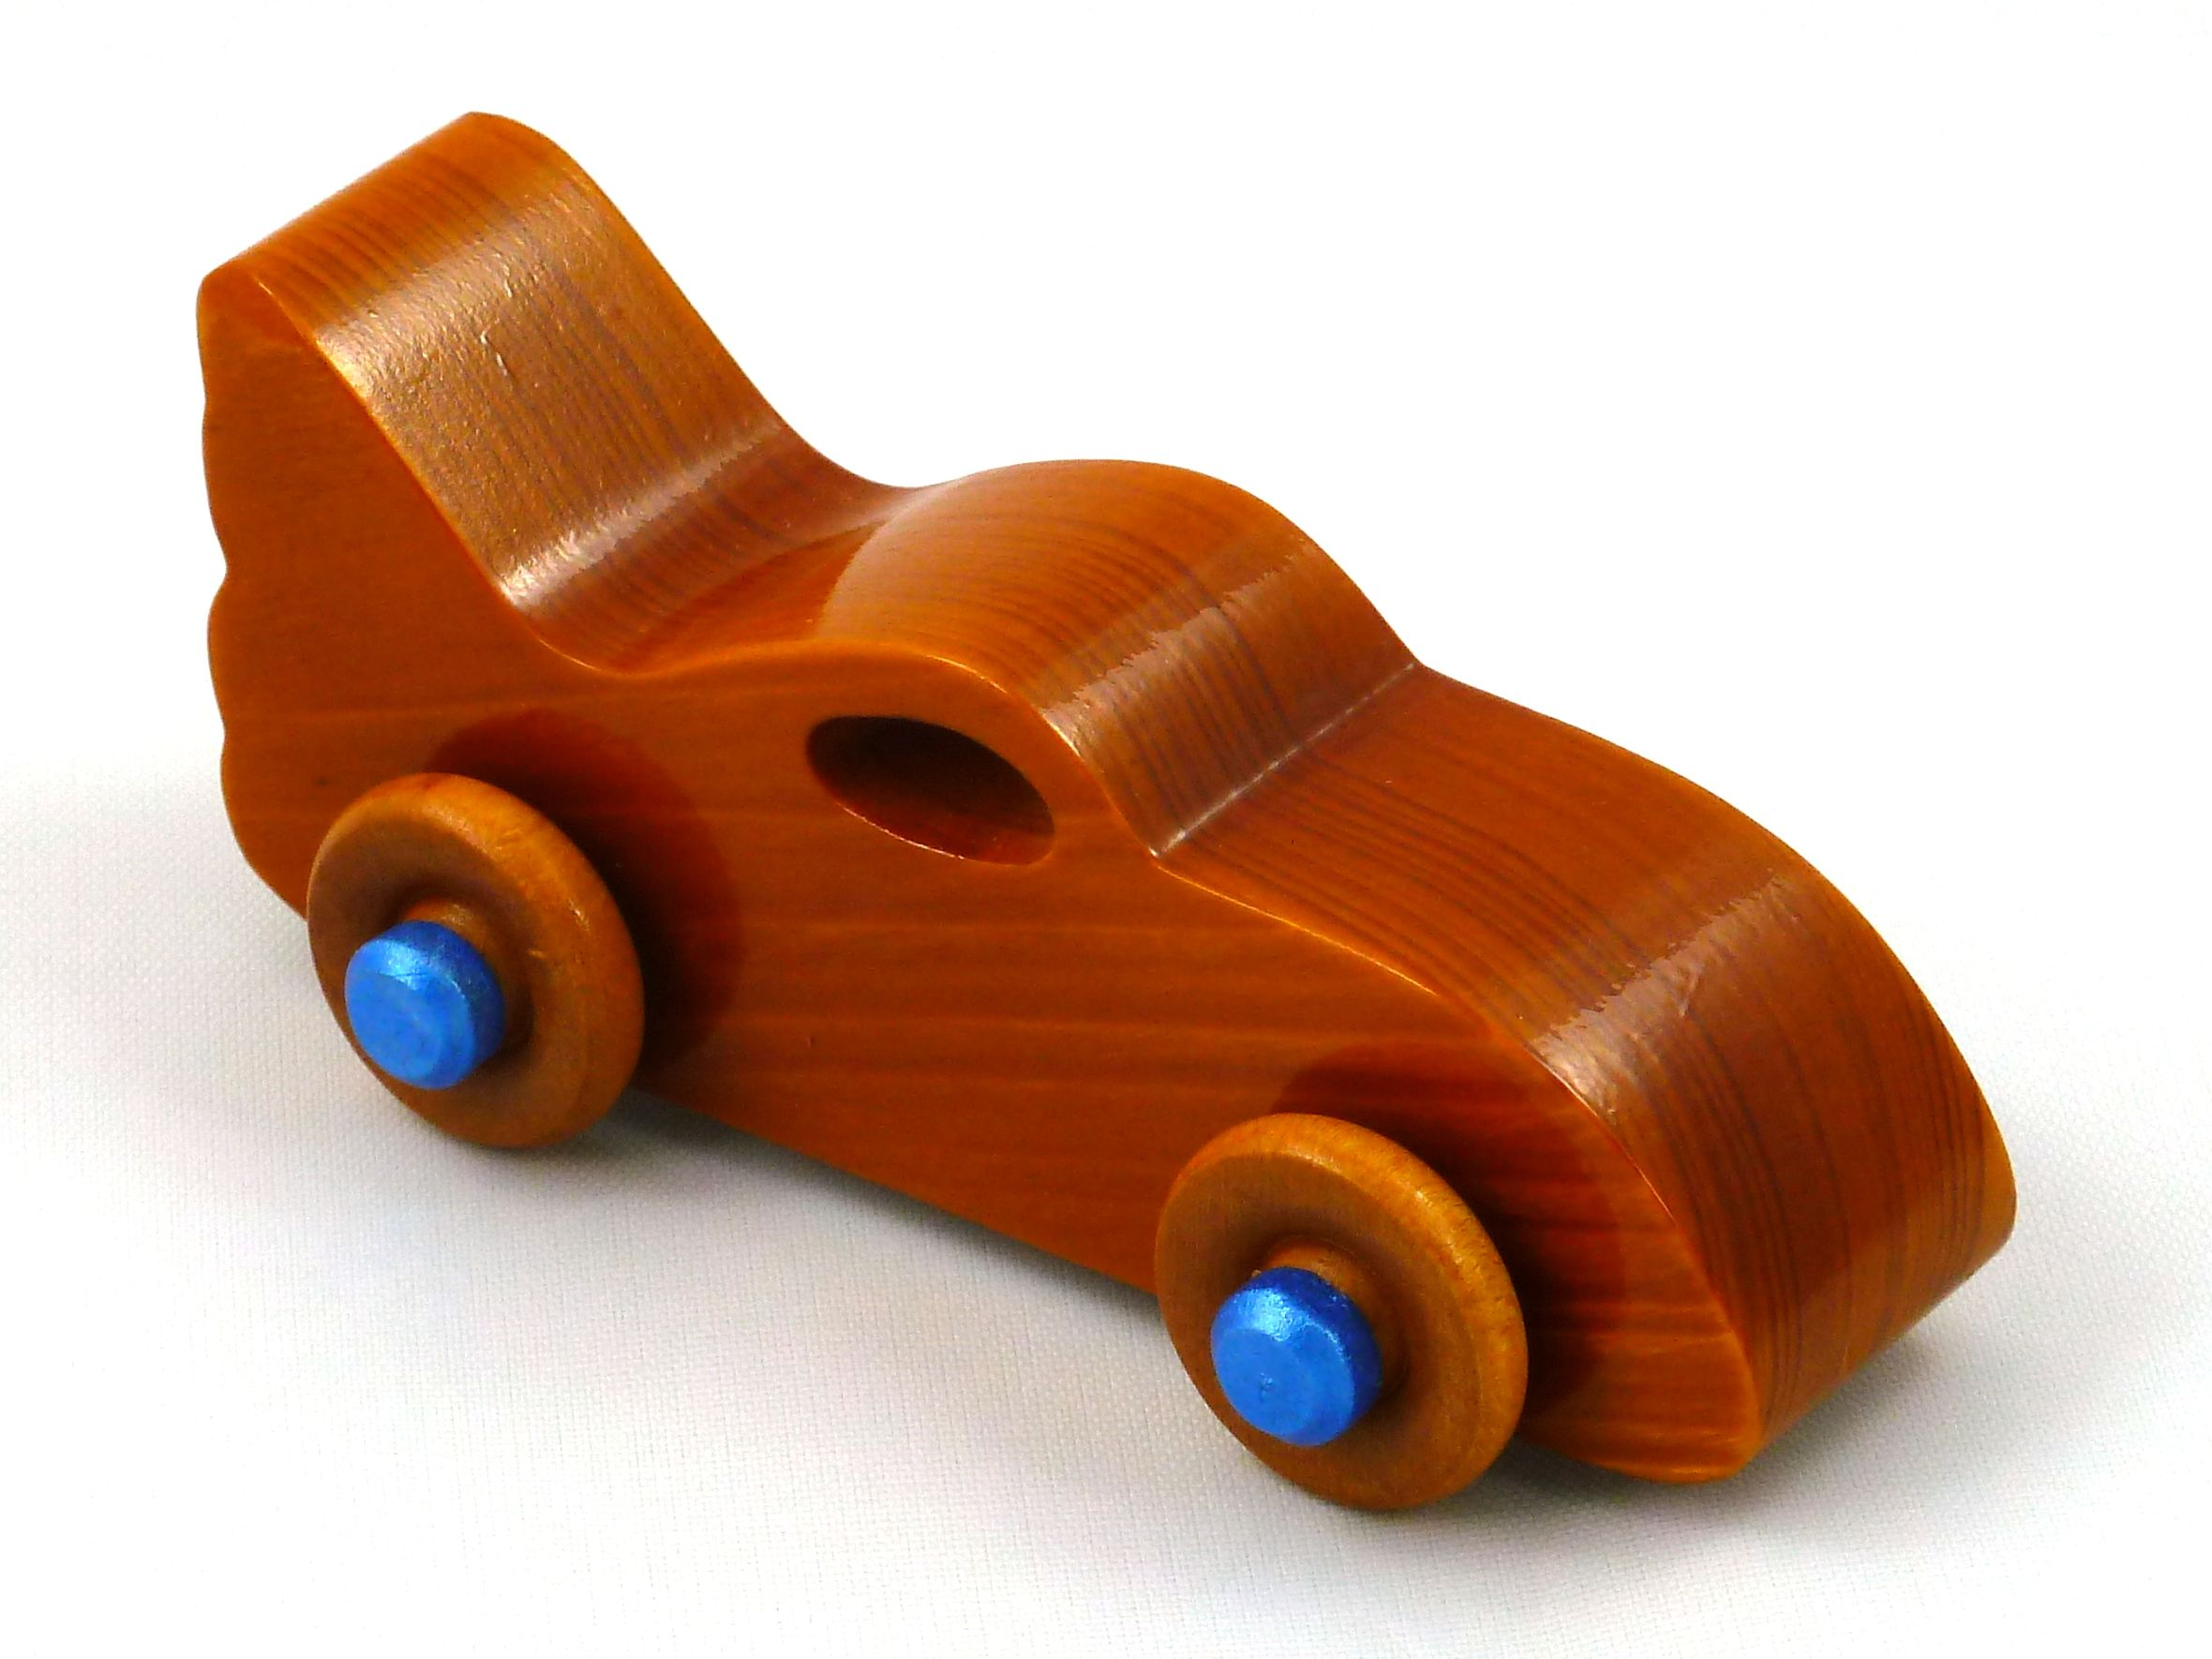 Toys images for boys  Handmade Wooden Toy Car Bat Car from the Play Pal Series  Dřevěné